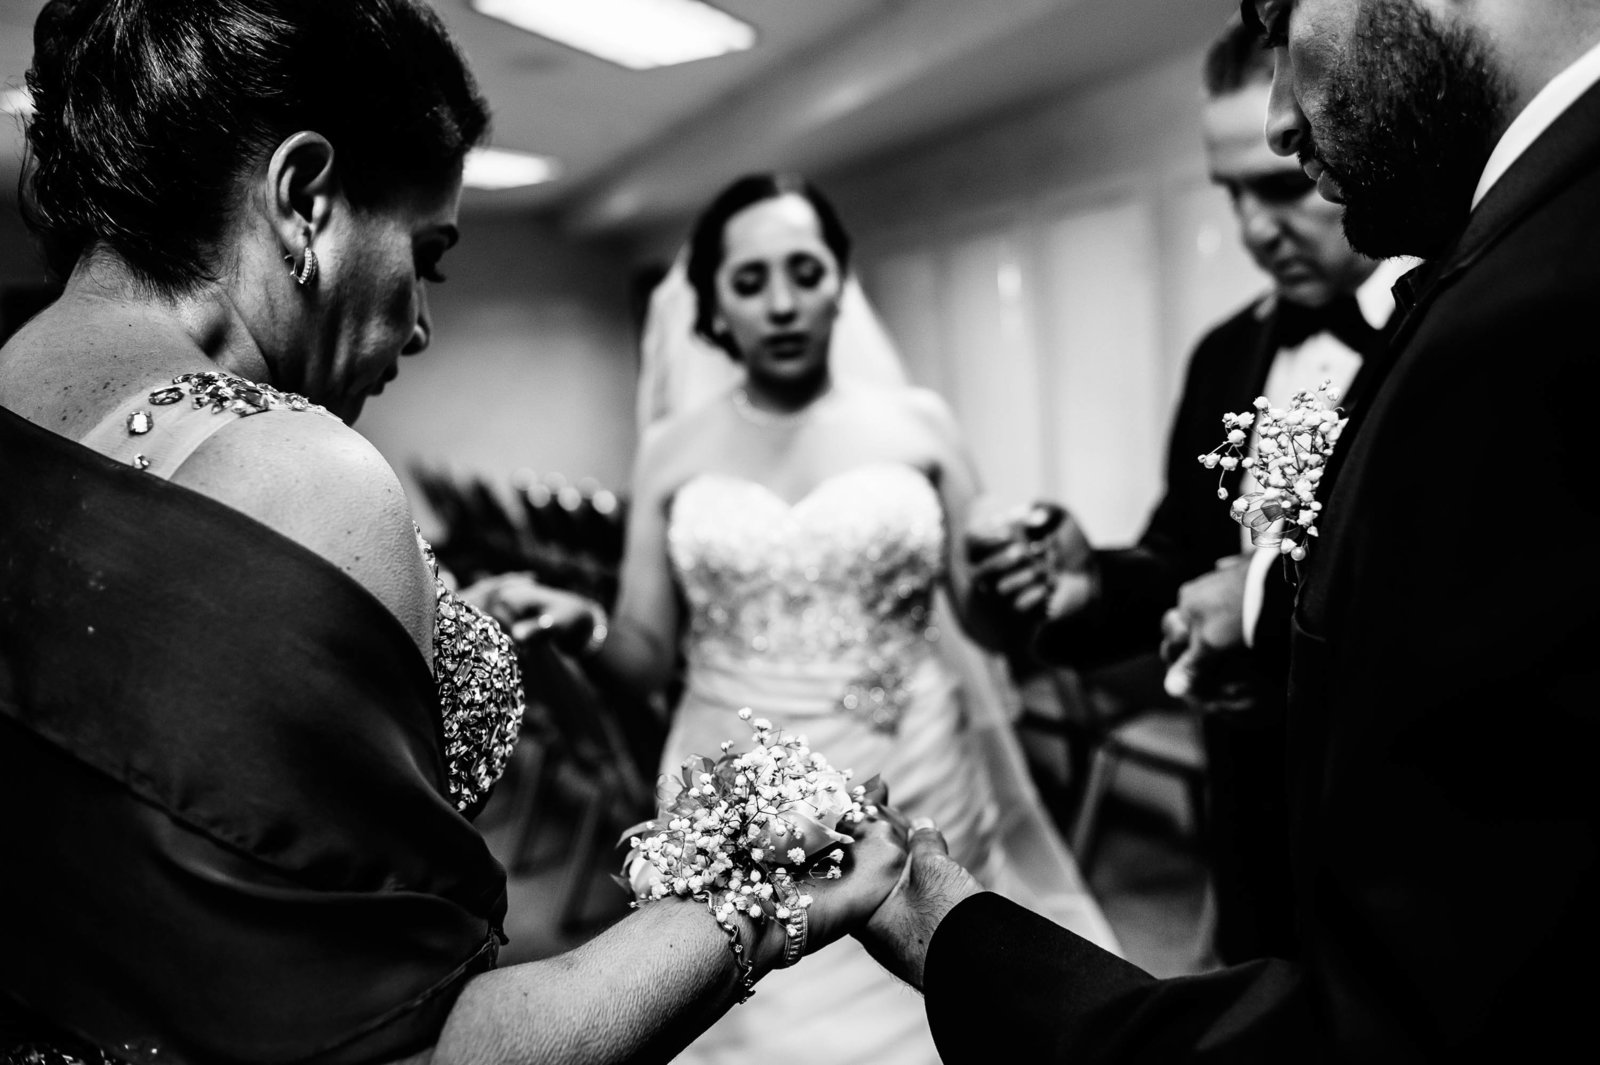 181-El-paso-wedding-photographer-El Paso Wedding Photographer_M63